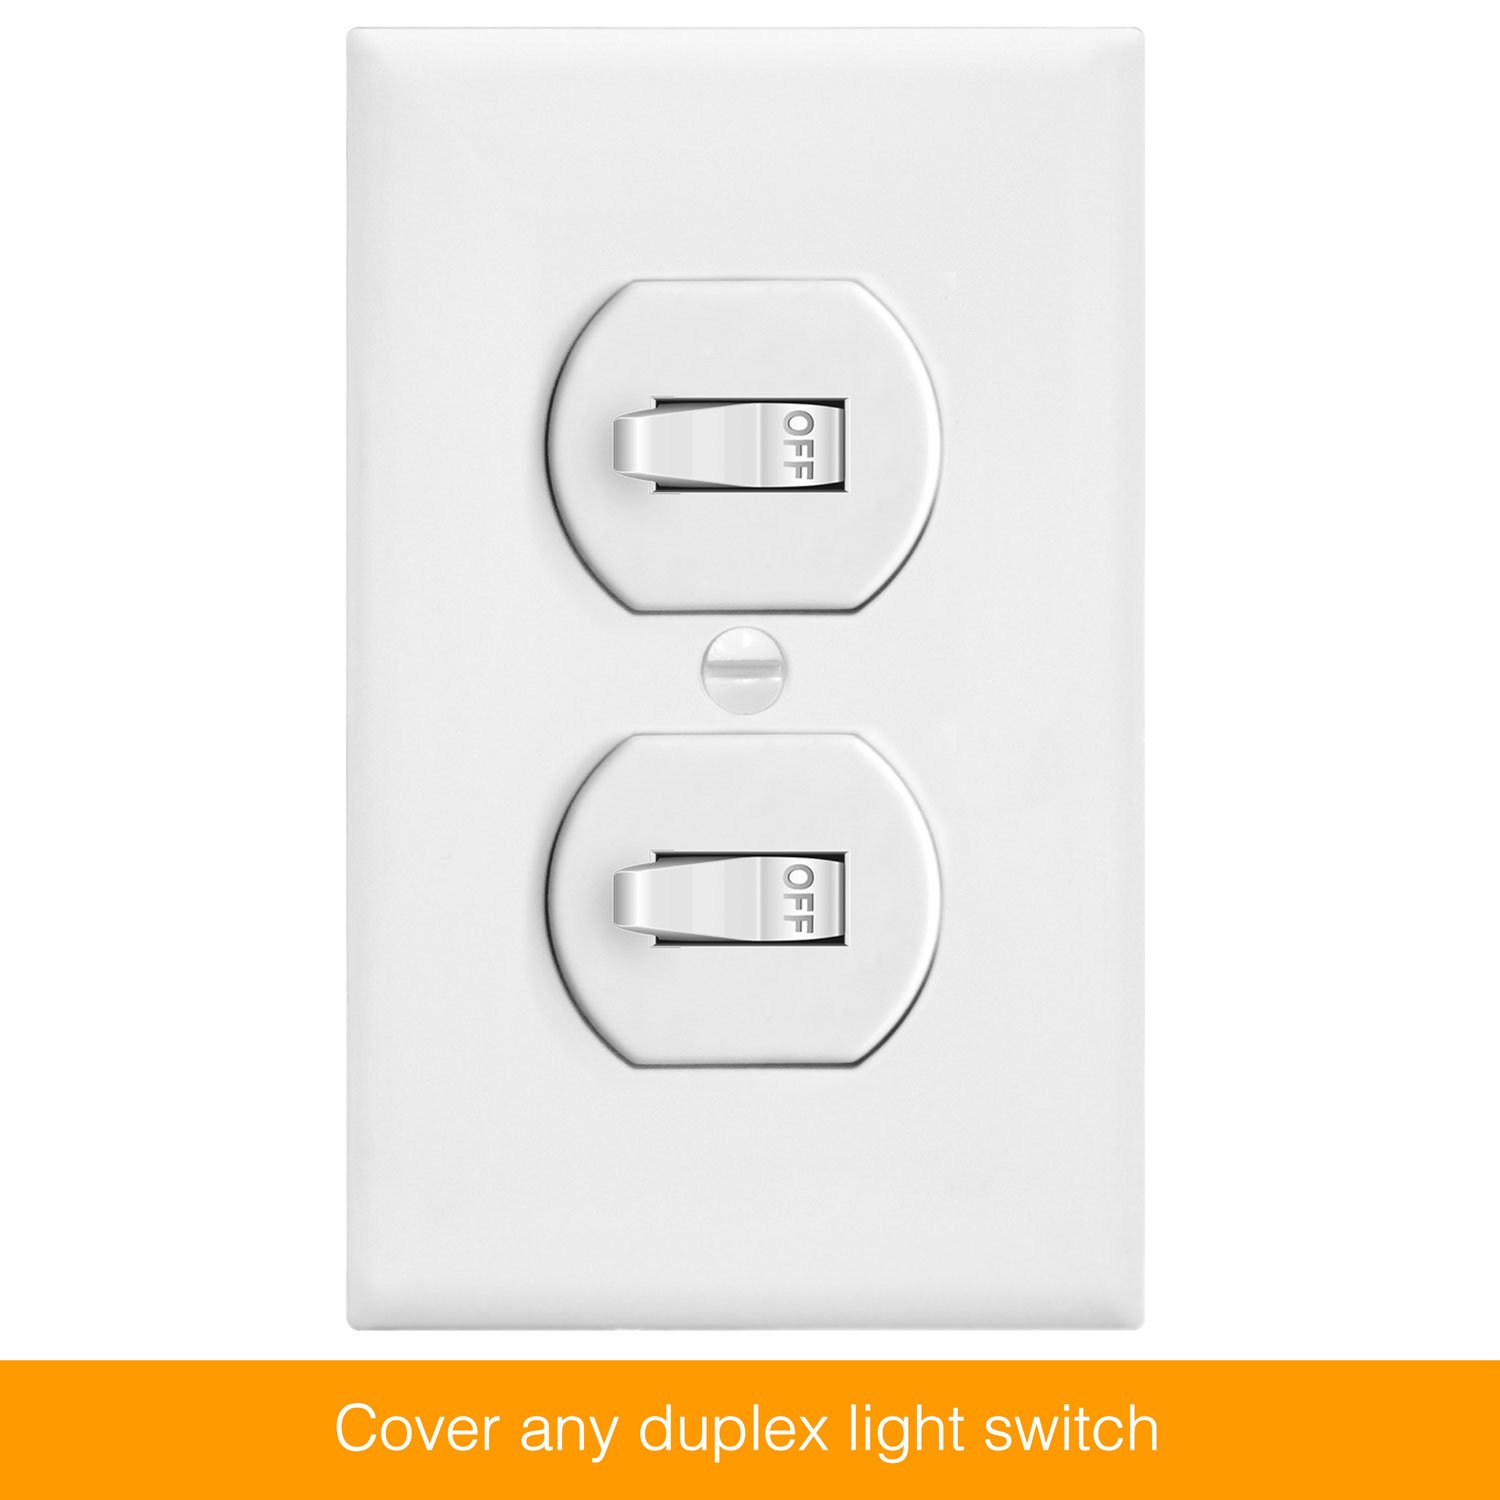 ENERLITES Duplex Receptacle Outlet Wall Plate, Size 1-Gang 4.50'' x 2.76'', Polycarbonate Thermoplastic, 8821-W-10PCS, White (10 Pack) by ENERLITES (Image #4)